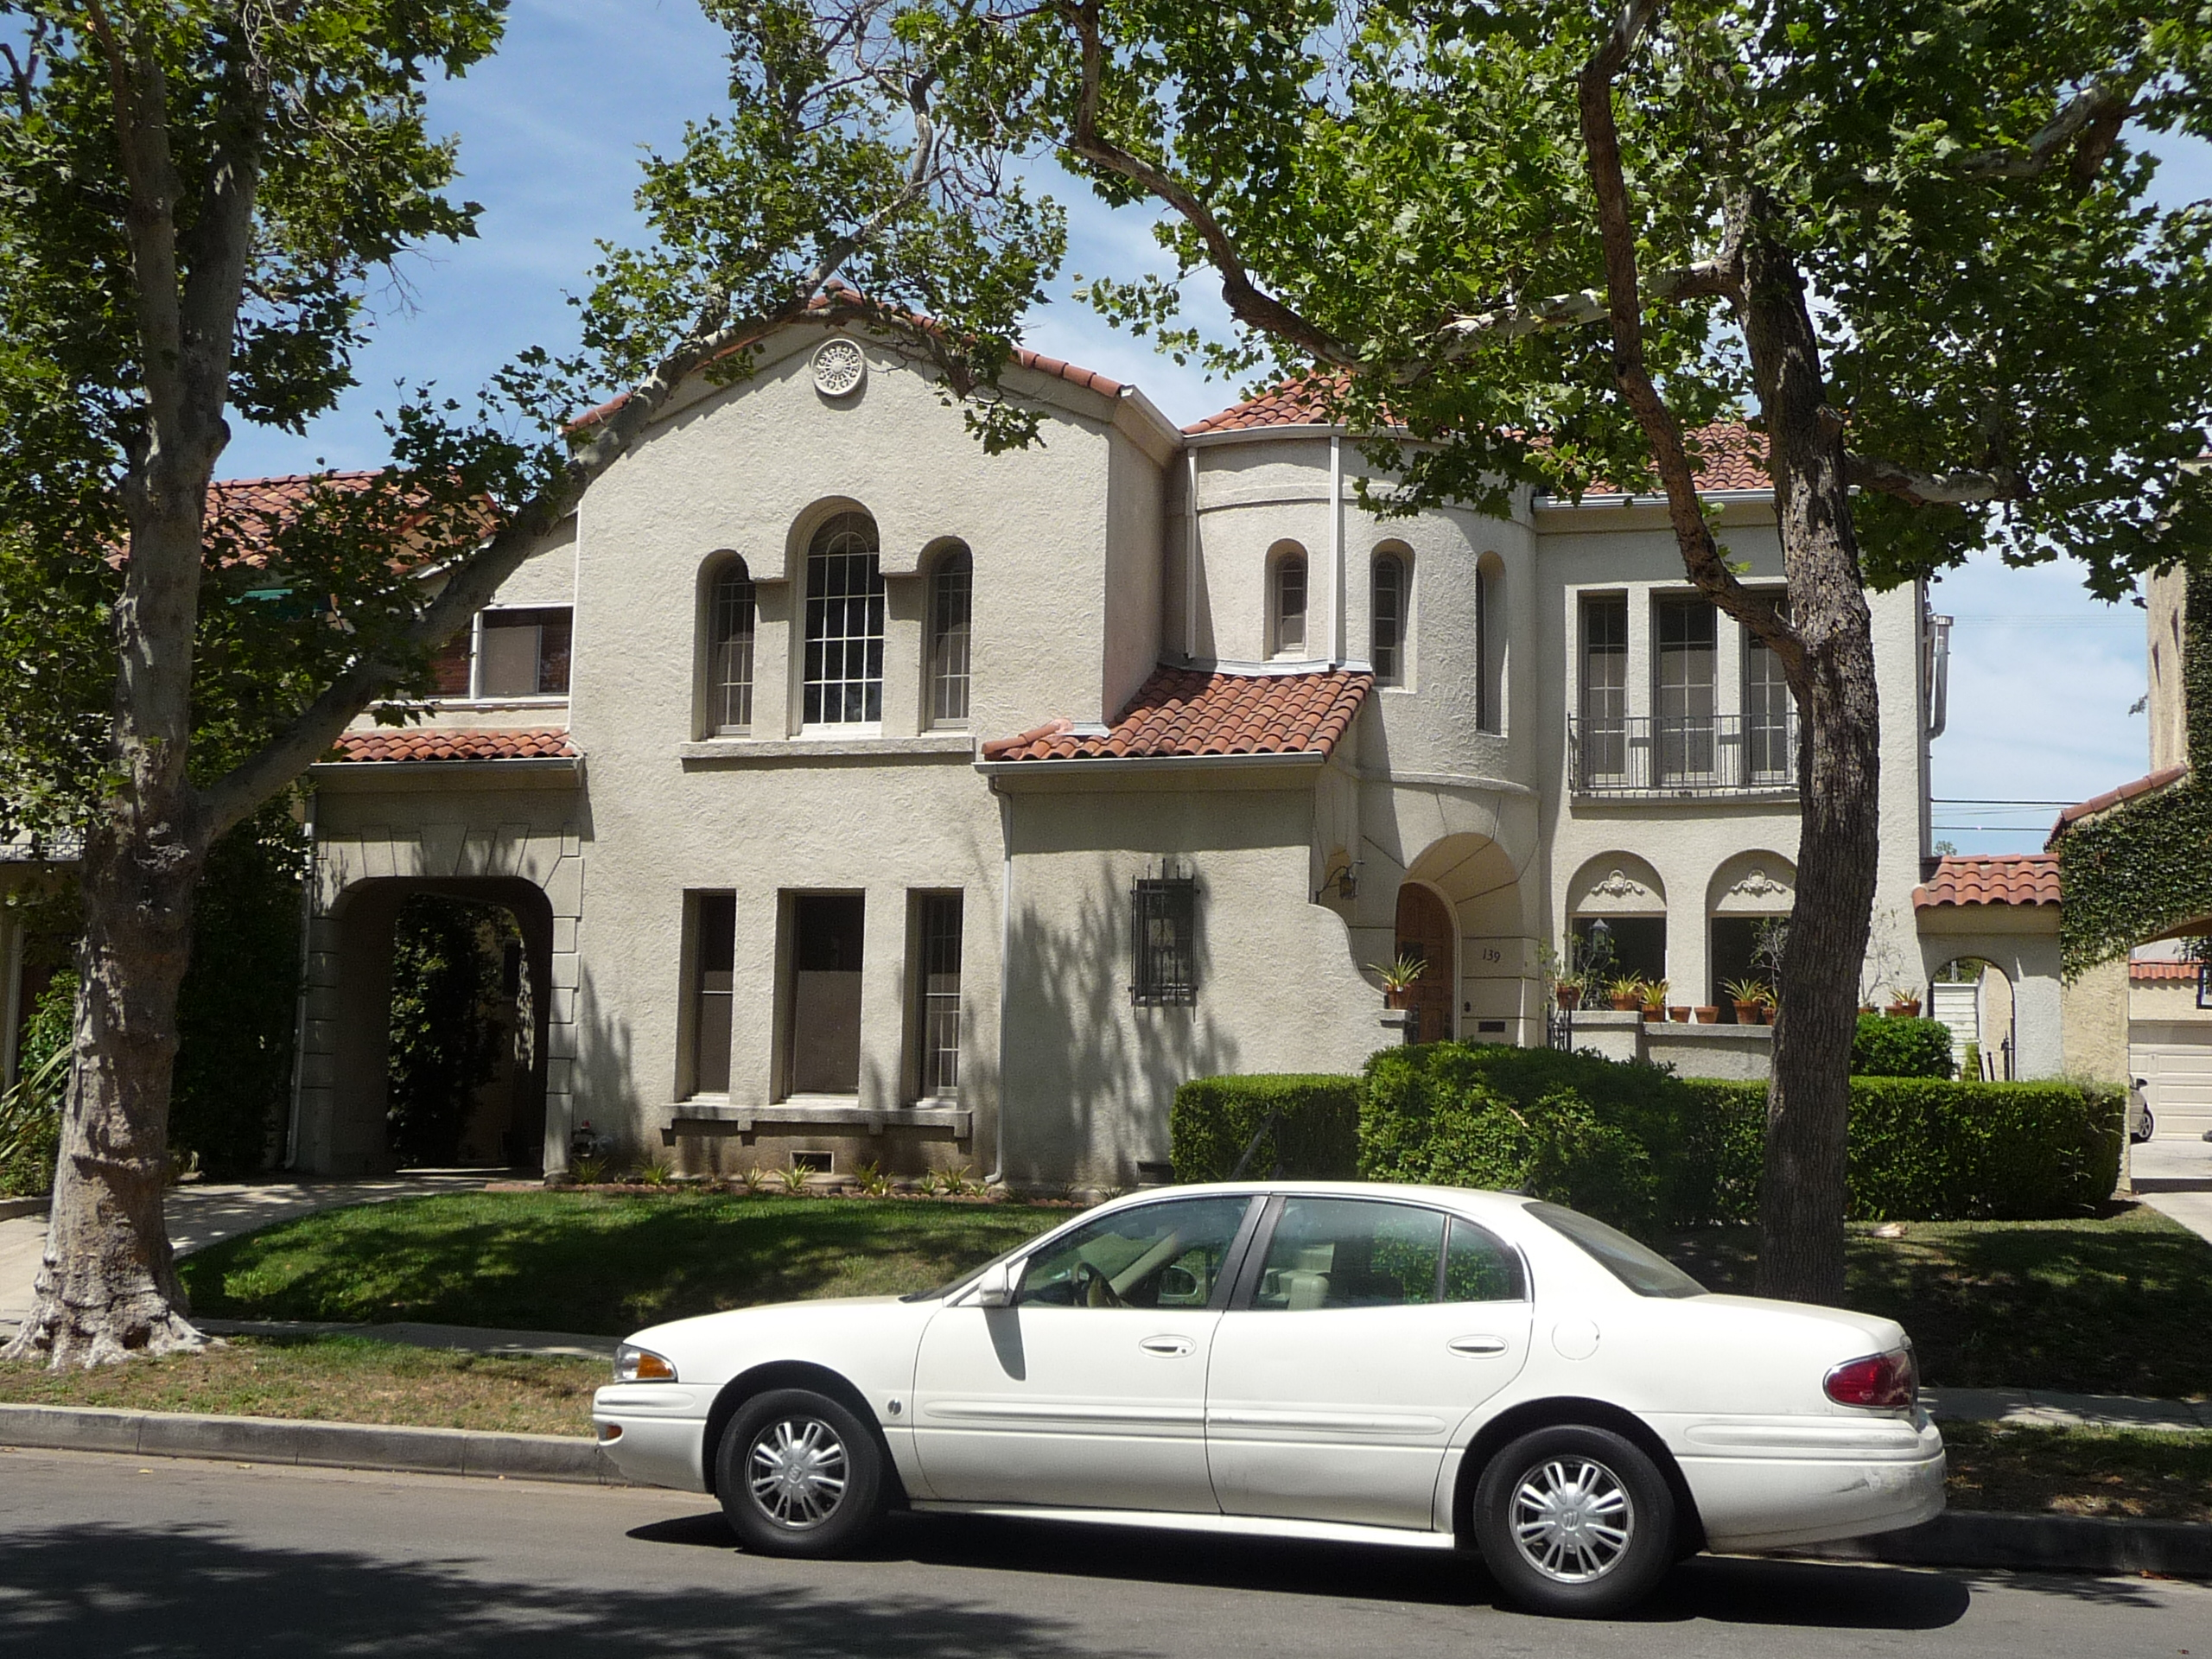 139 S MANSFIELD AVE - PHOTO